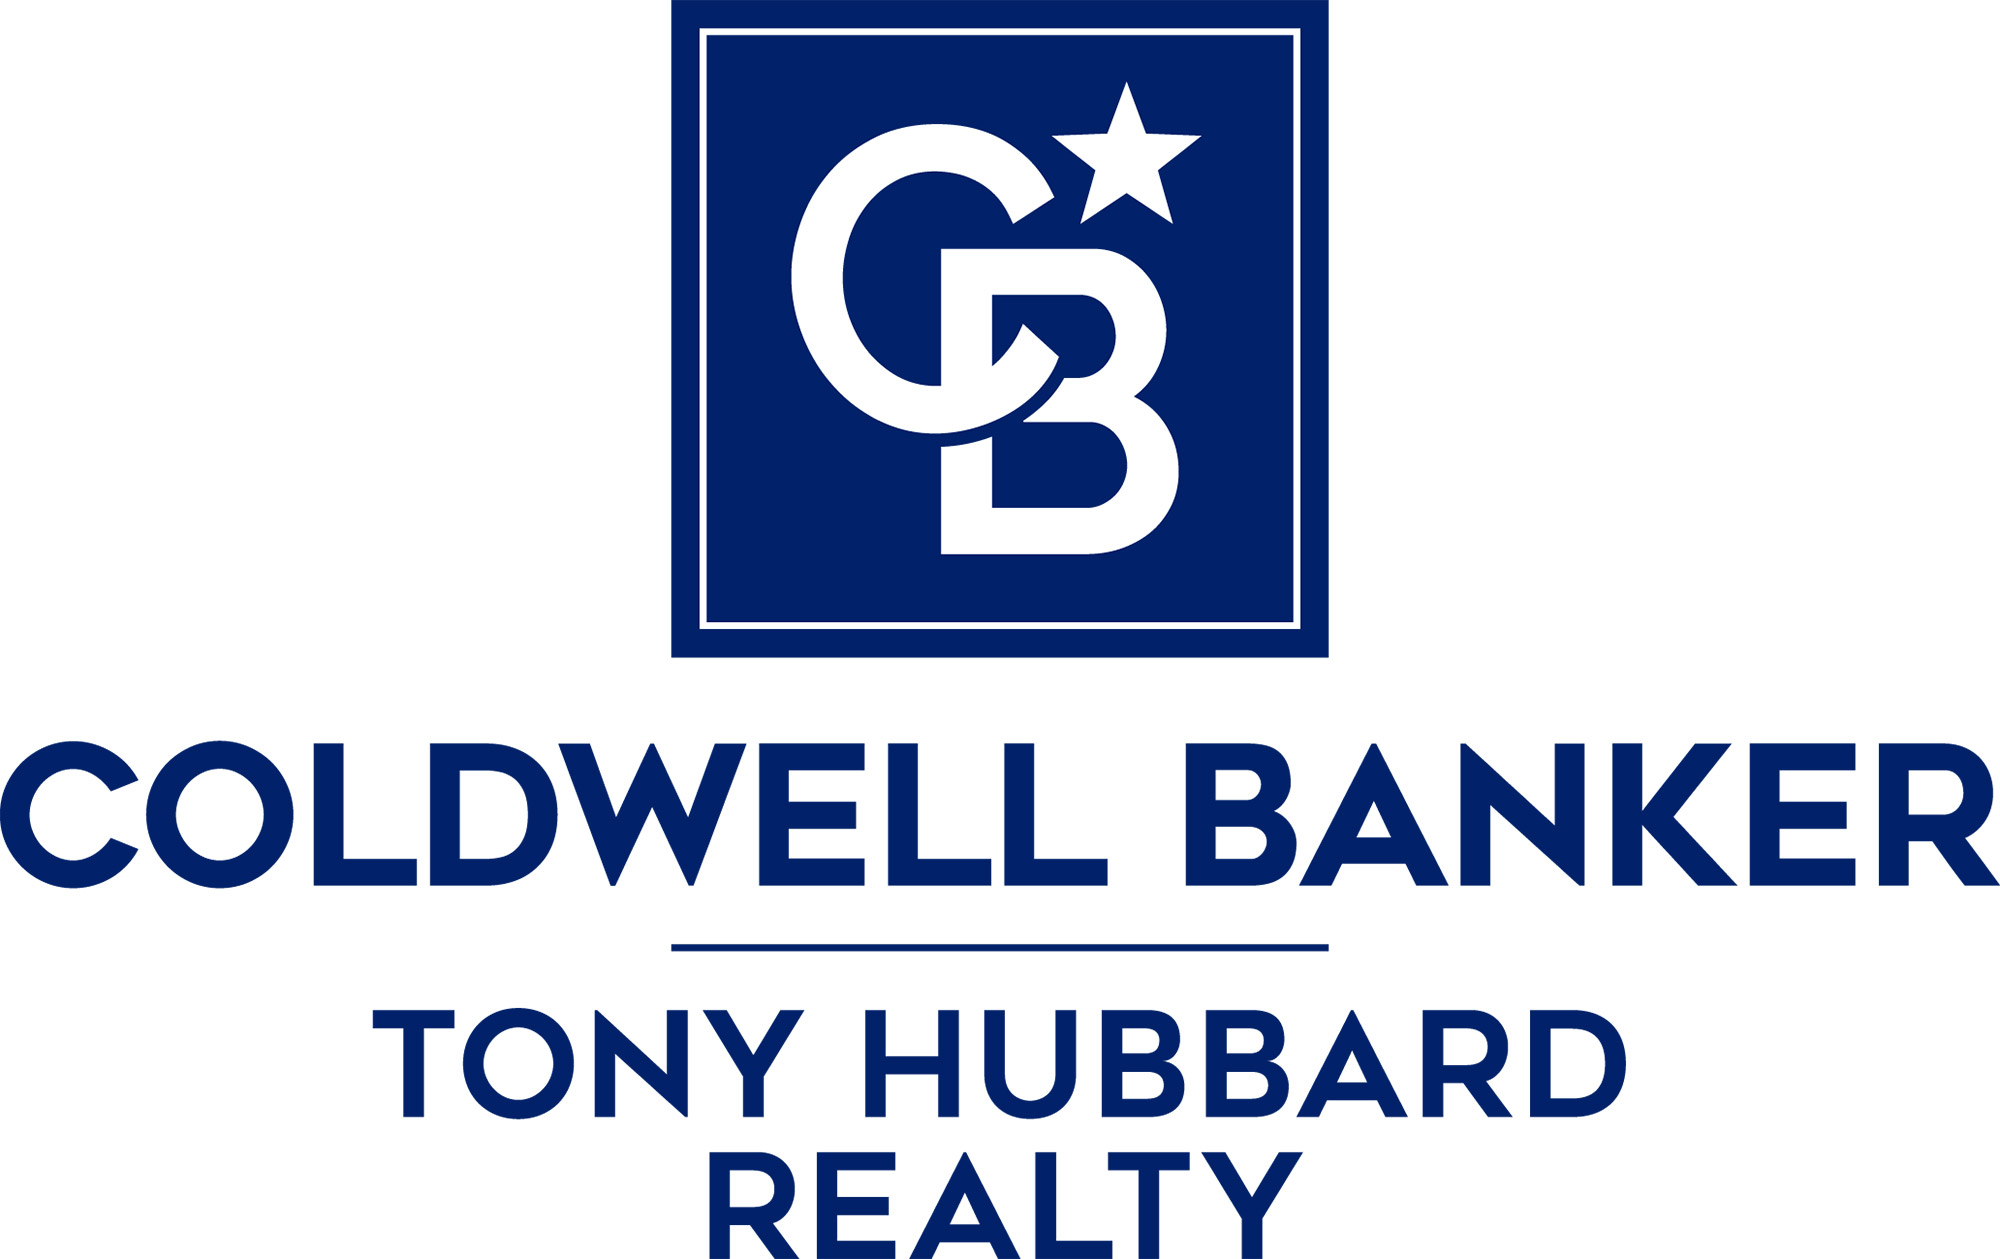 Anne Jones - Coldwell Banker Tony Hubbard Logo